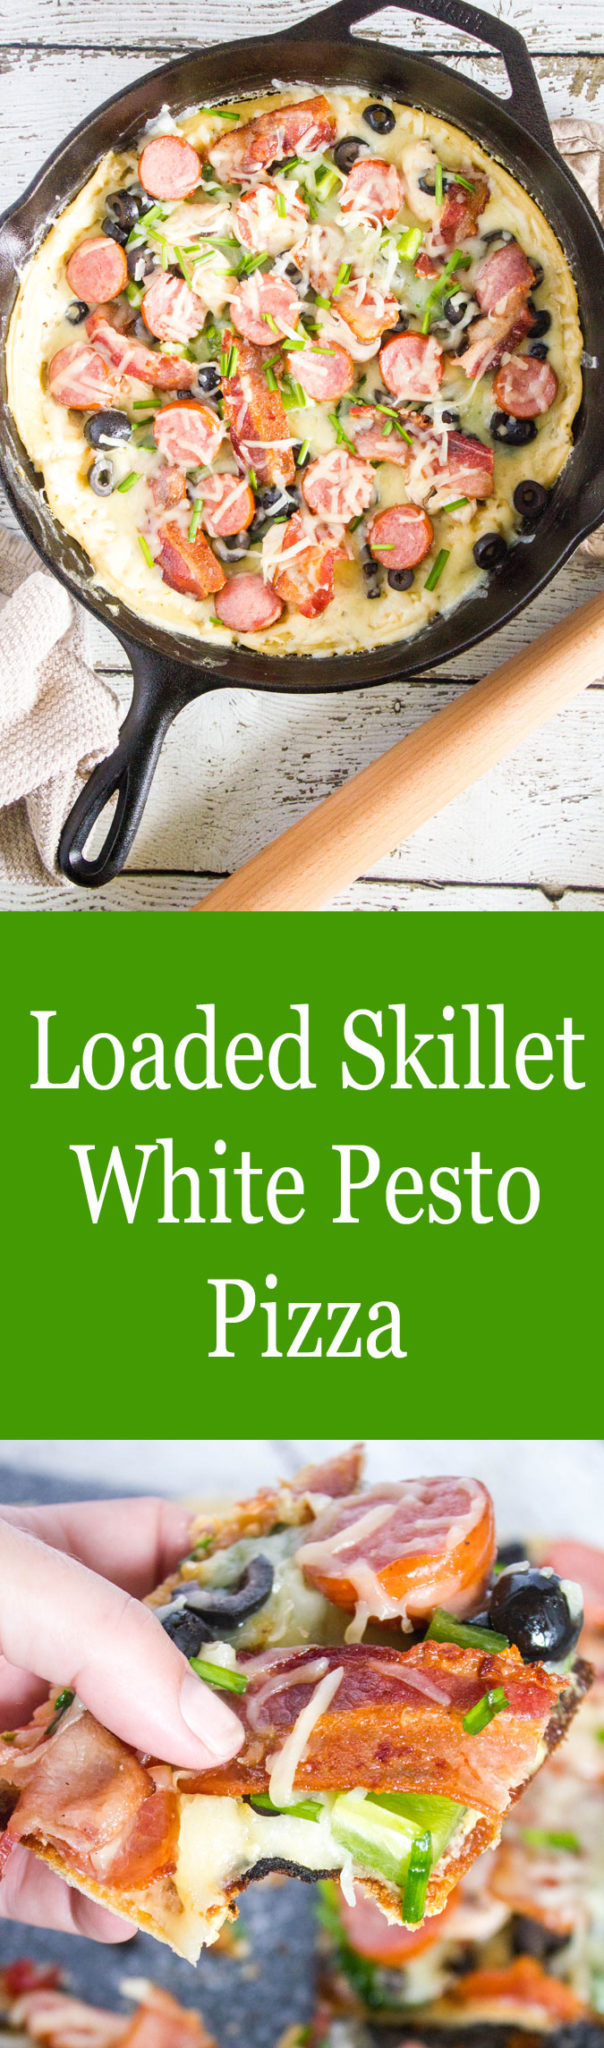 Loaded Skillet White Pesto Pizza #SundaySupper #SkilletMeals #SkilletDinner #SkilletPizza YUM! DELICIOUS!!